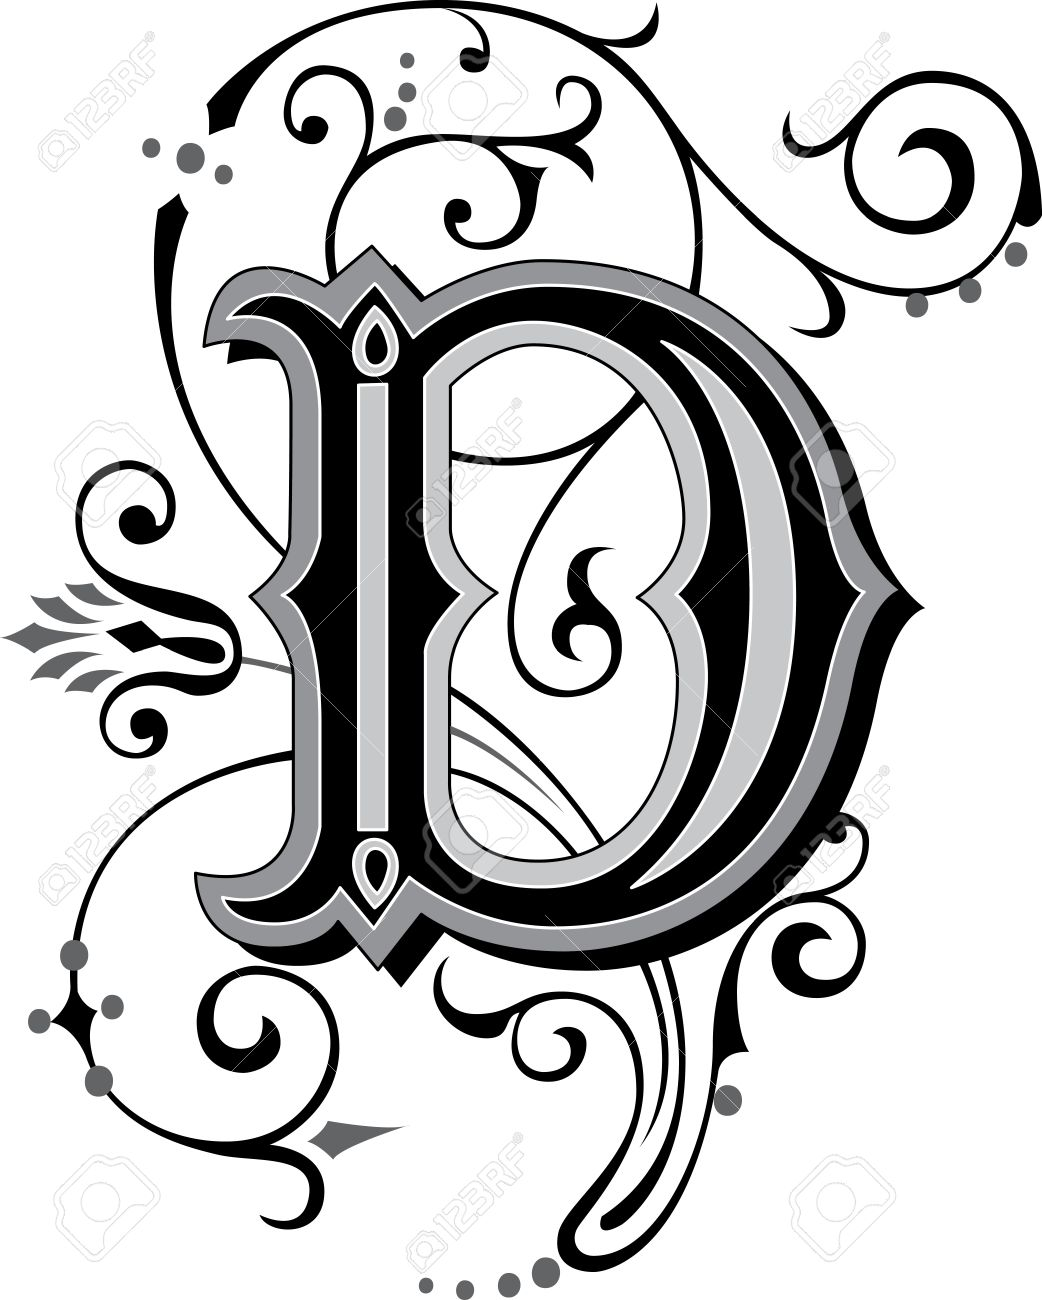 Beautifully Decorated English Alphabets Letter D Stock Vector